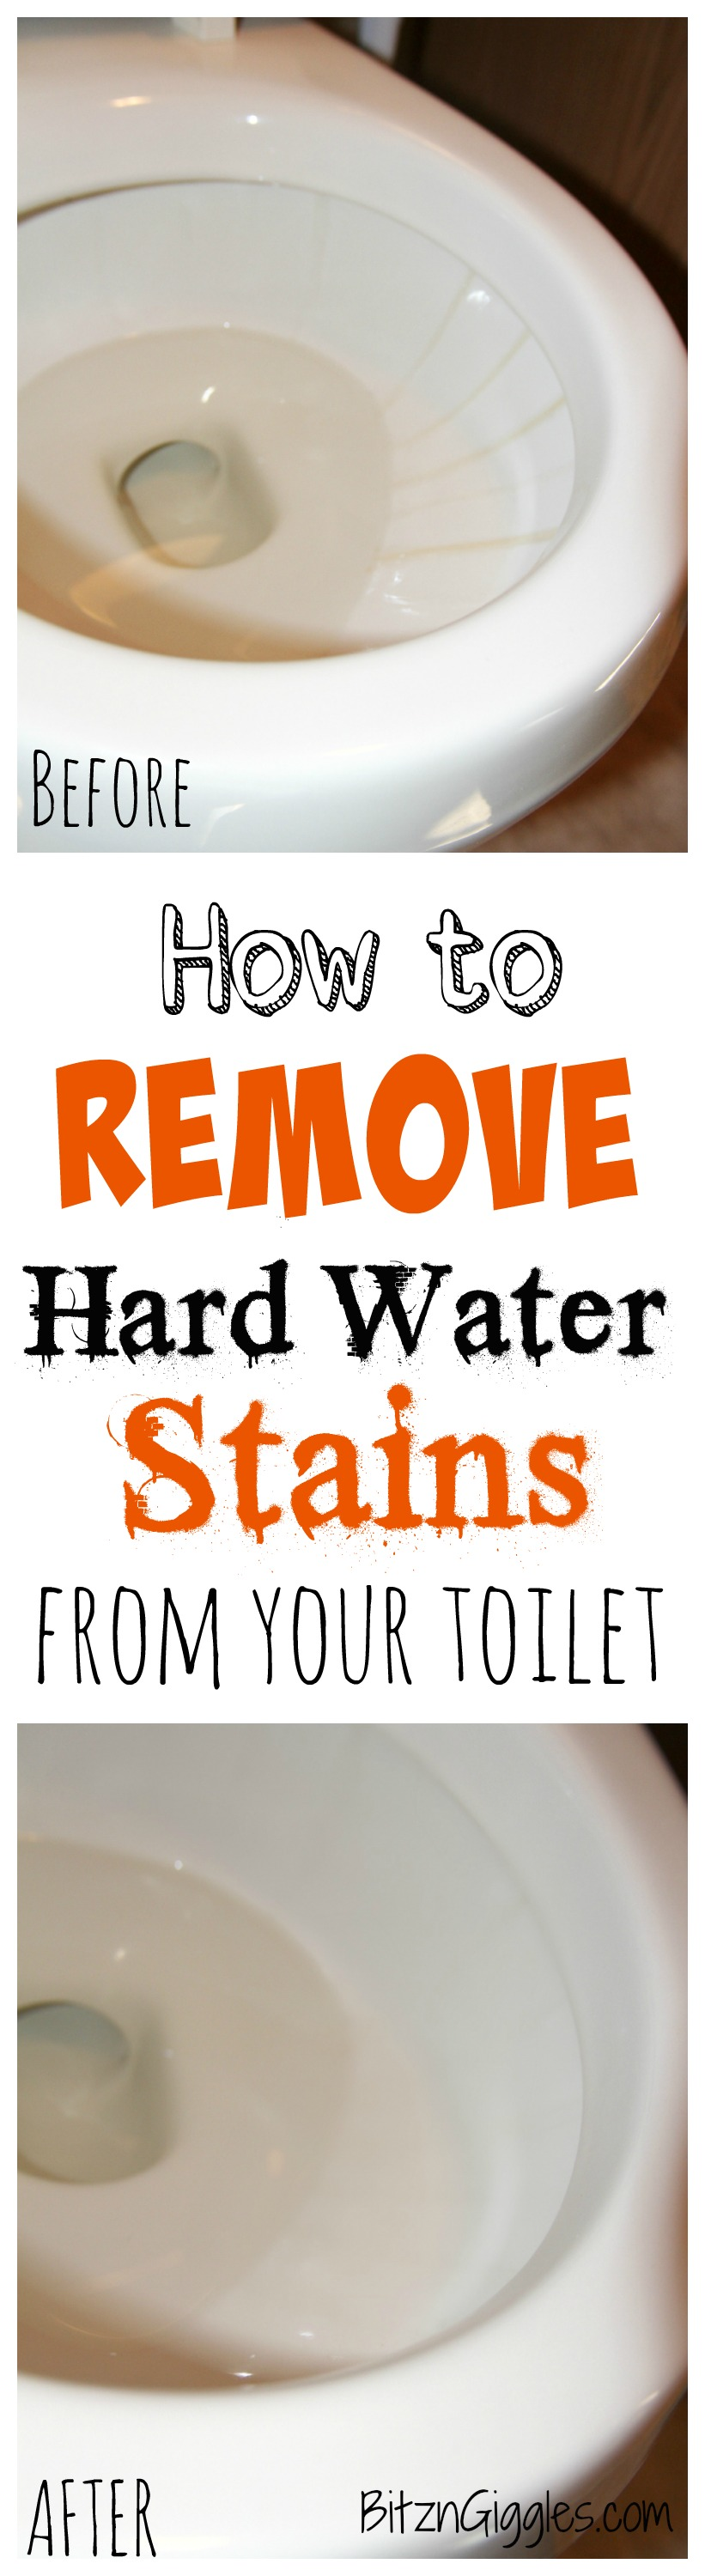 Awesome How To Remove Well Water Stains Images - Bathtub for ...